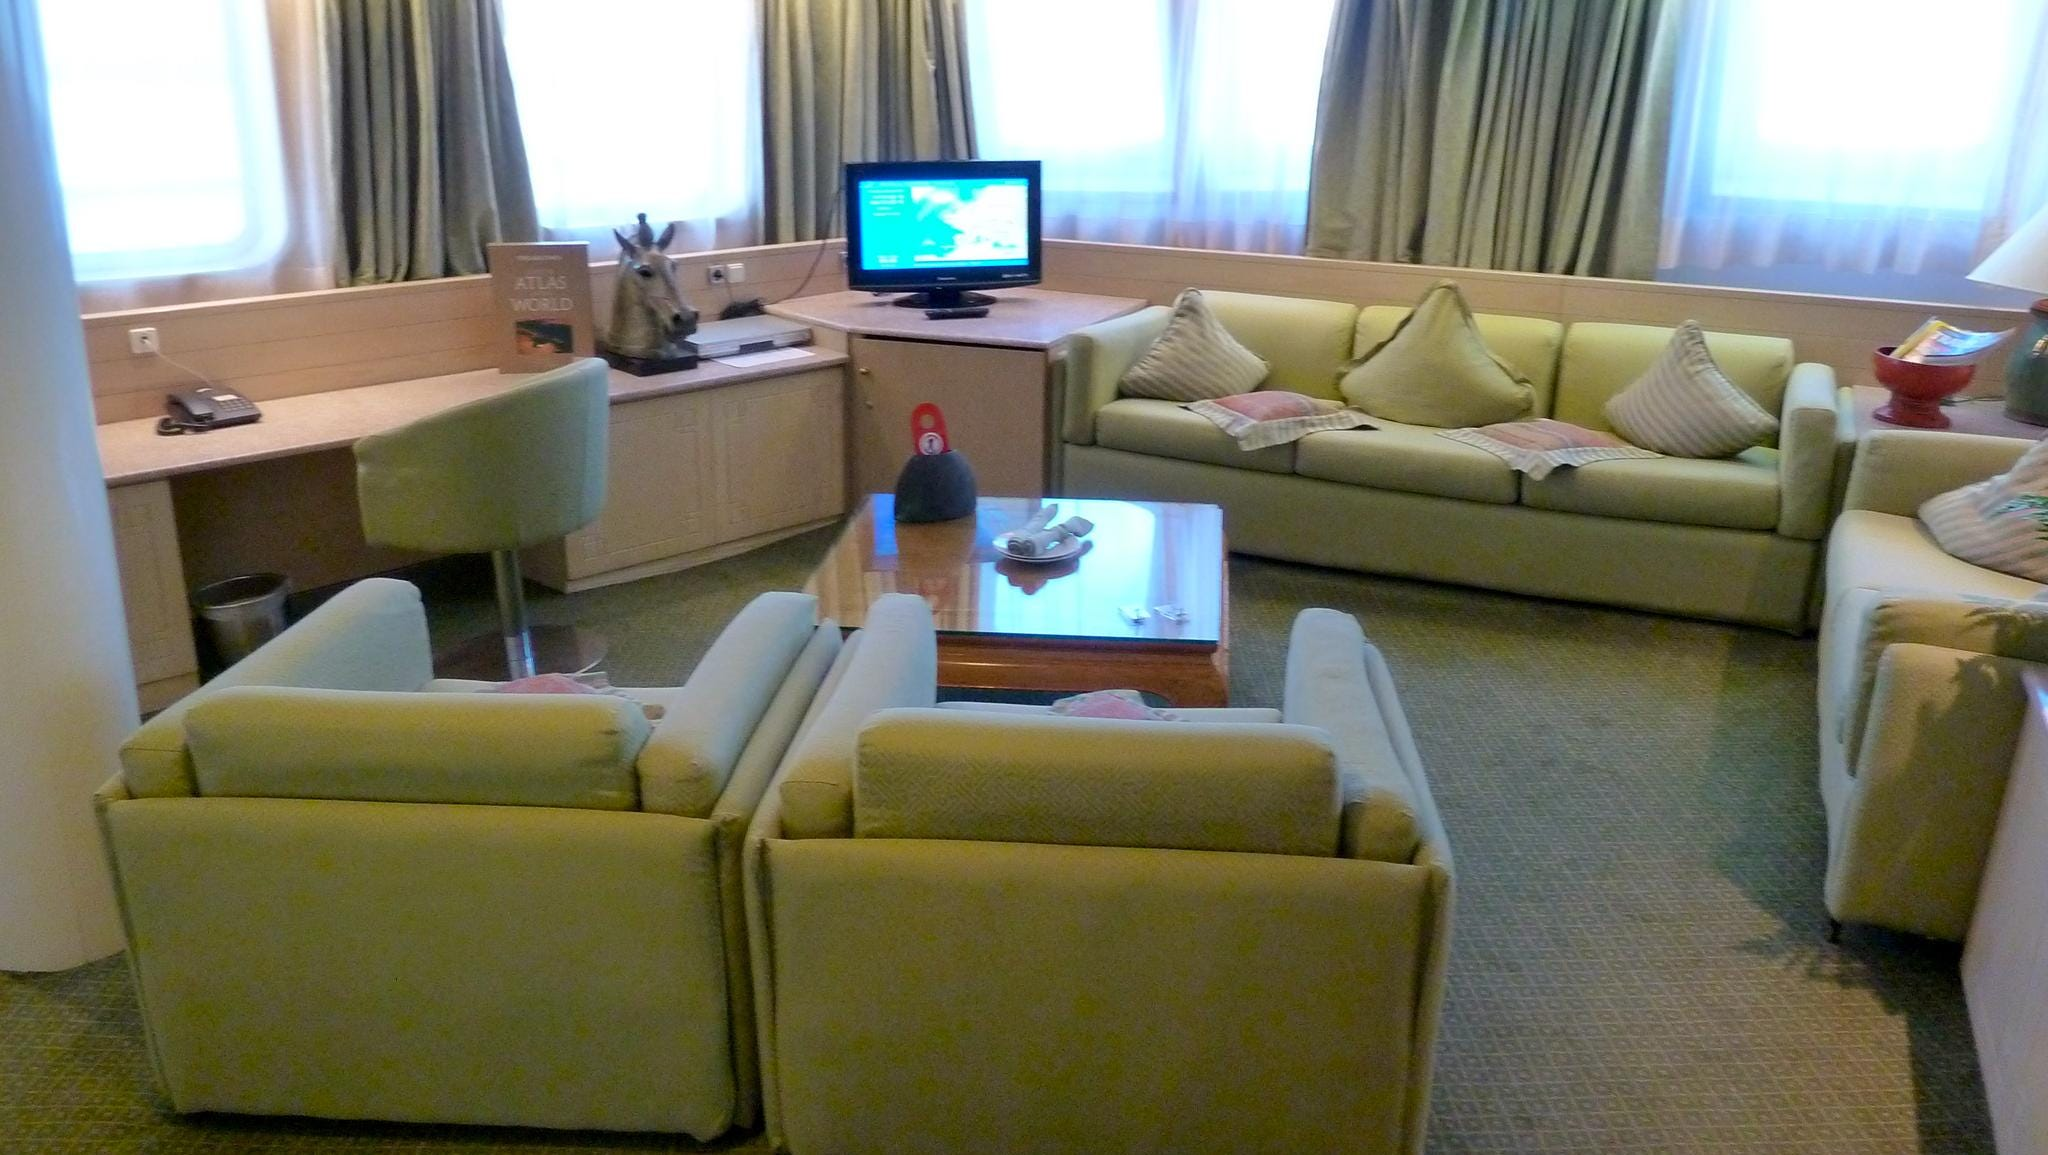 The living room of the Mandarin Suite has two settees and two comfortable chairs, a large flat-screen television, writing desk and panoramic picture windows.